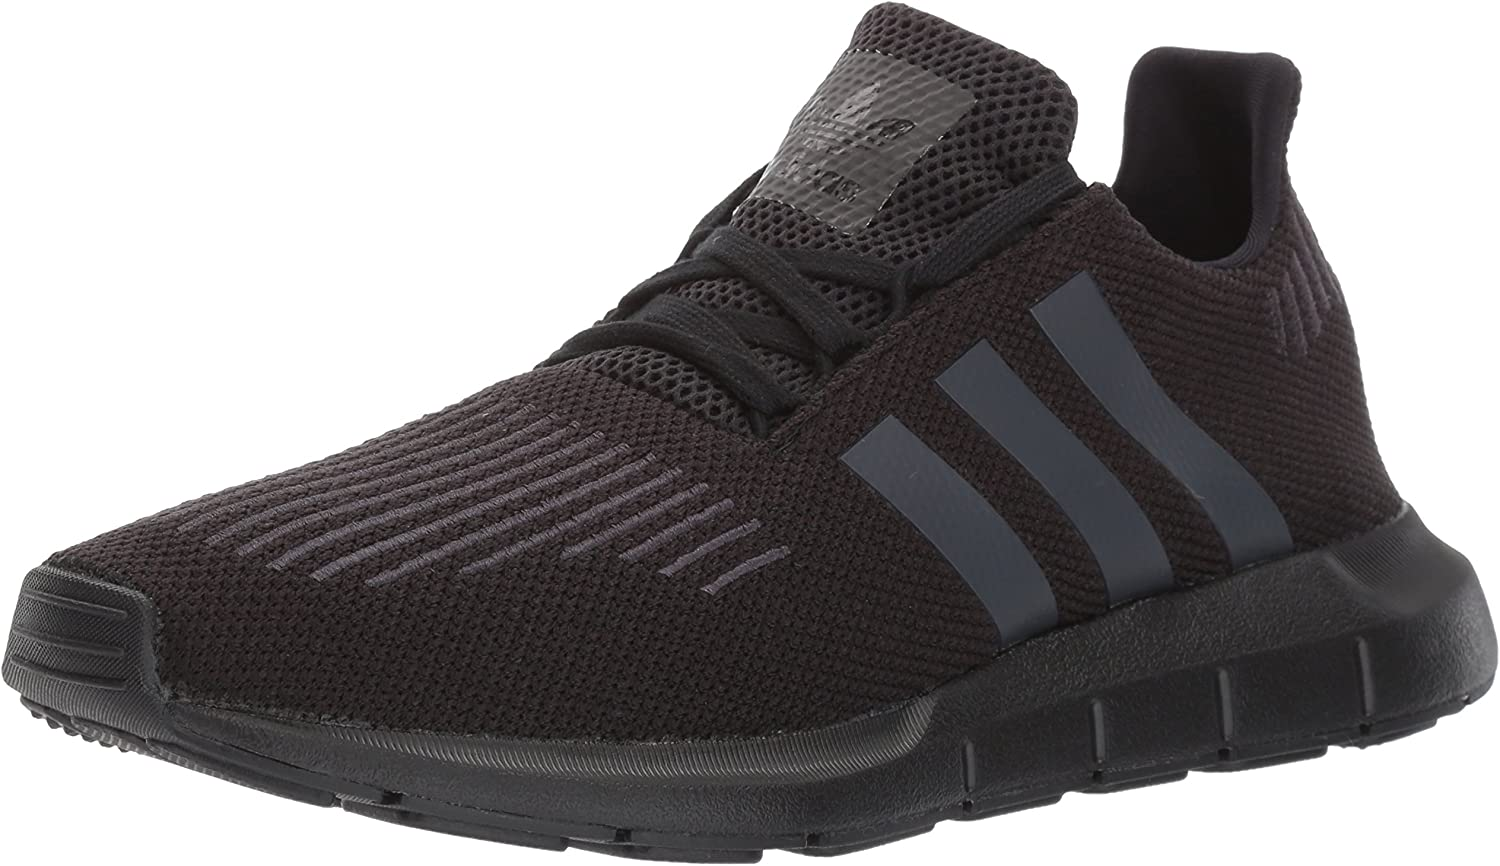 Adidas Originals Men's Swift Run, Black Utility Black Black, 4.5 Medium US